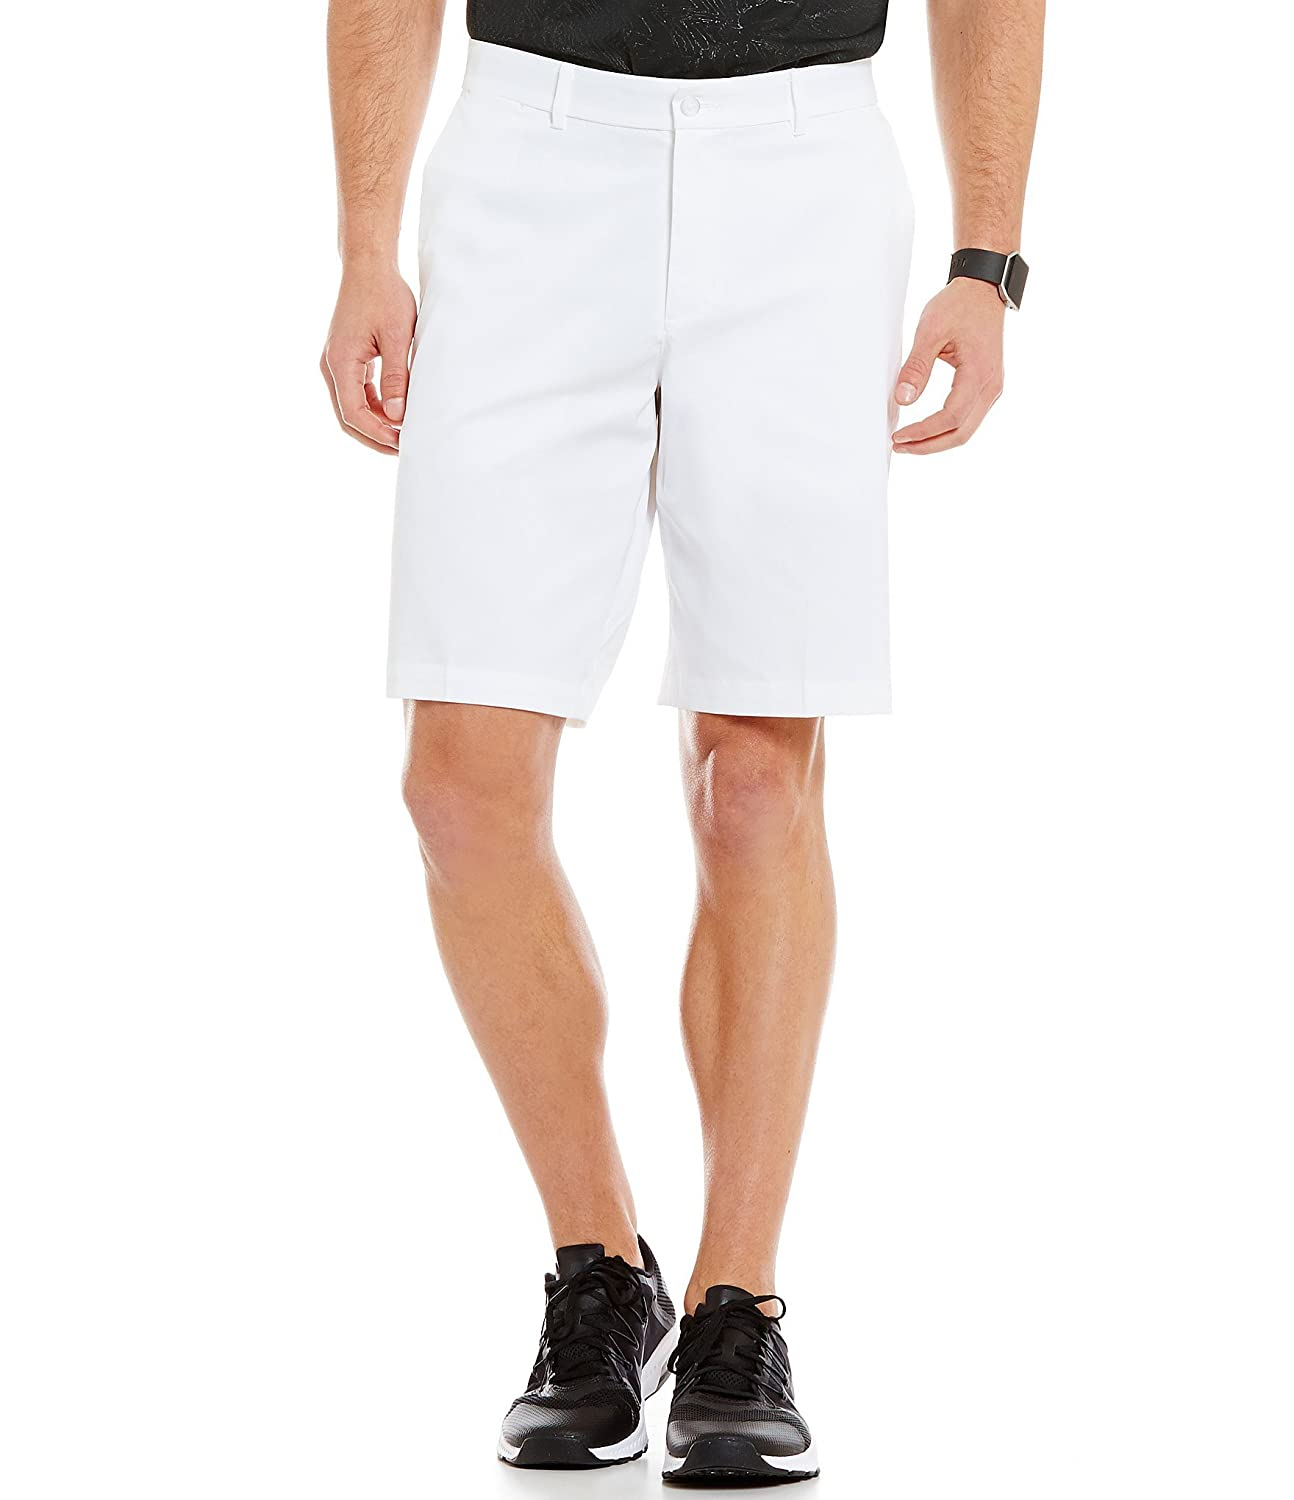 Saddlebred Men's Big & Tall Flat Front Shorts 52)